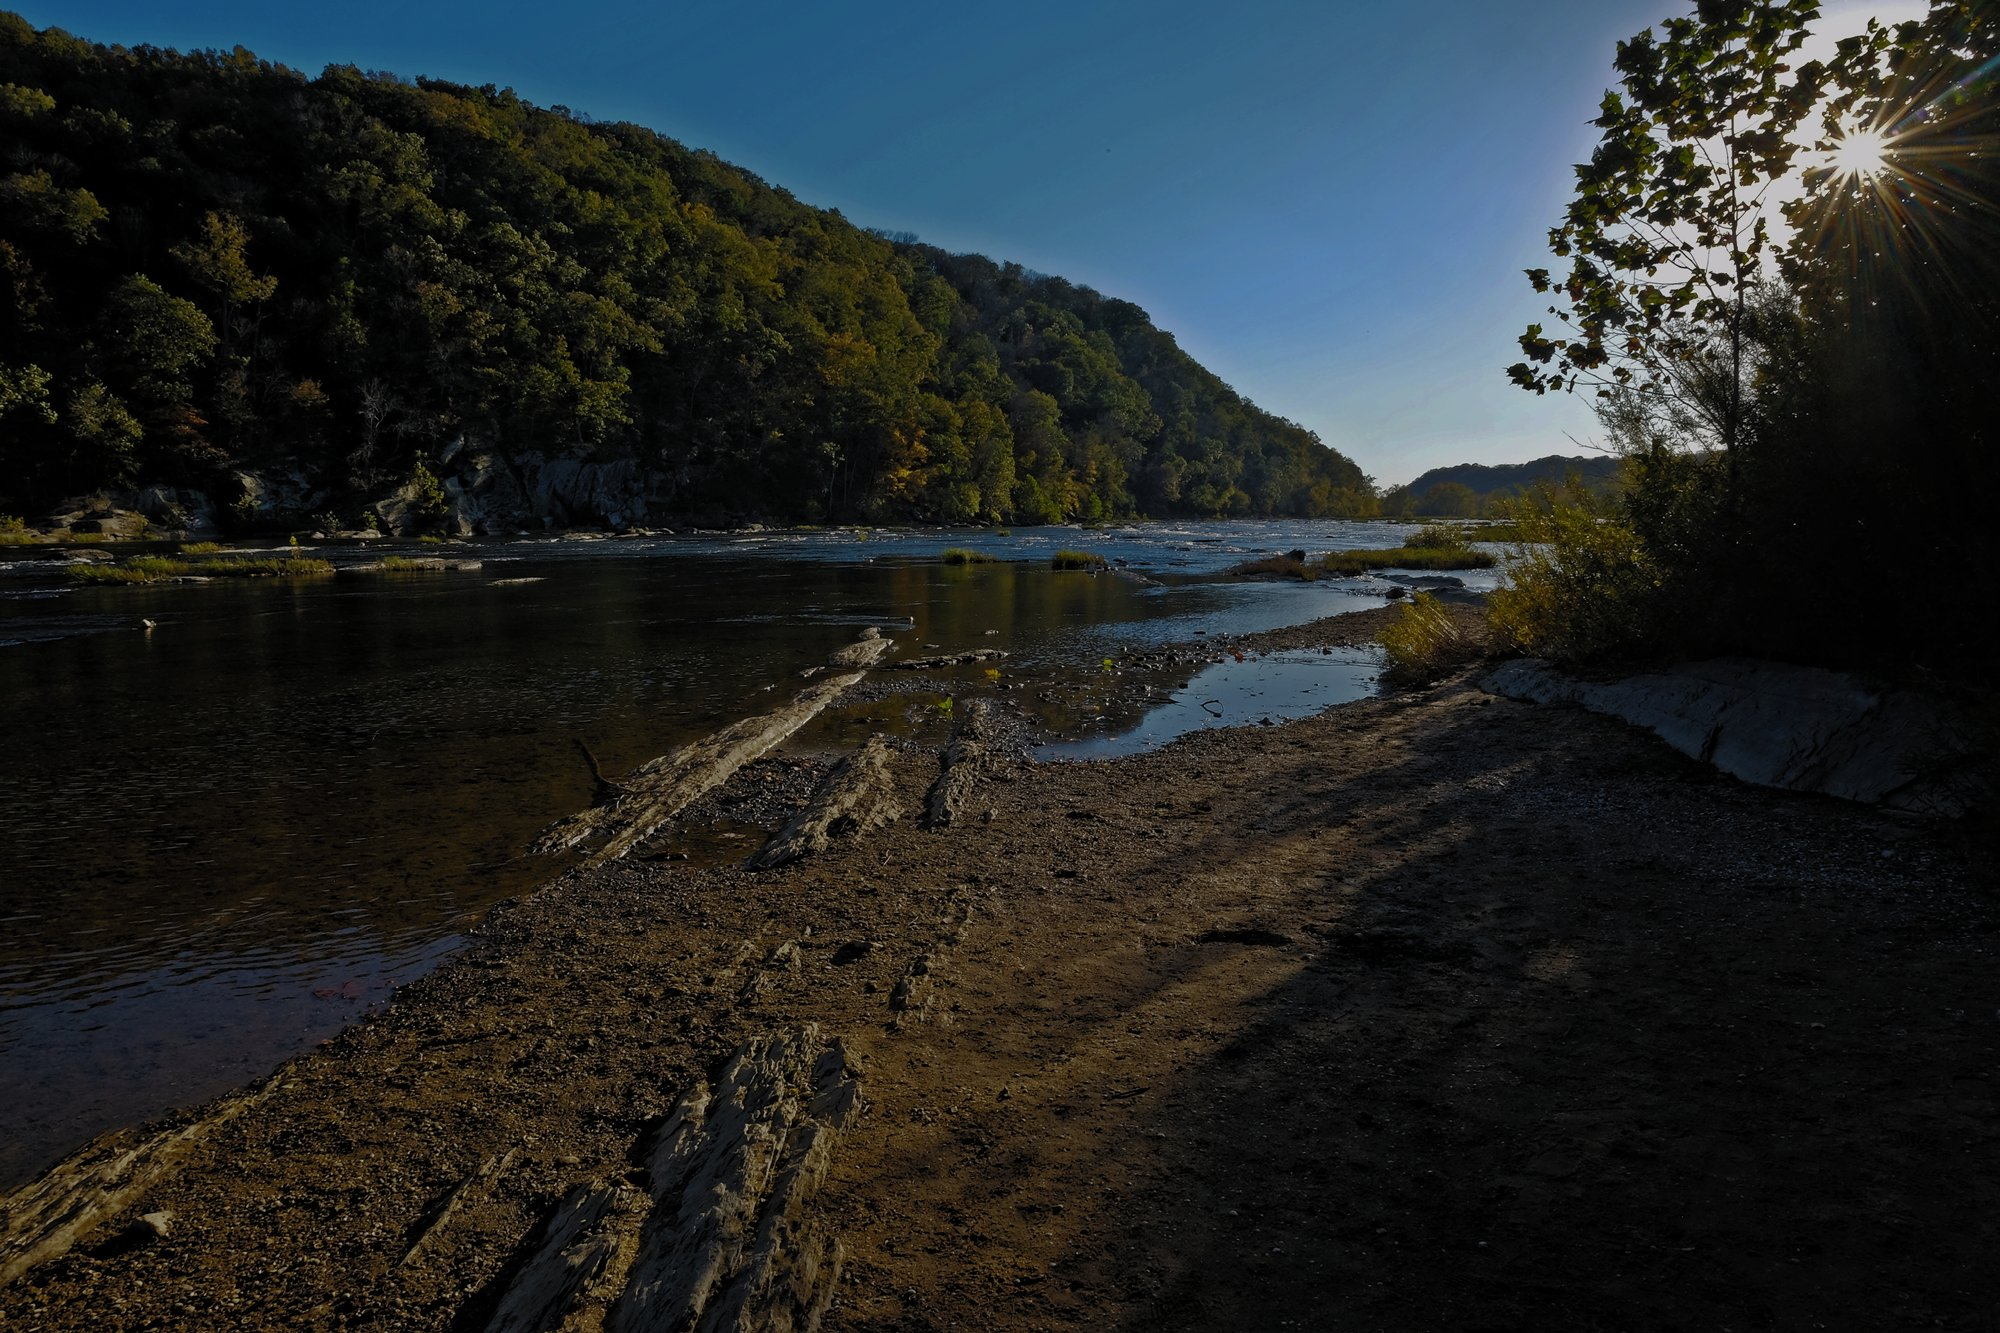 HarpersFerry-161023-4 copy.jpg